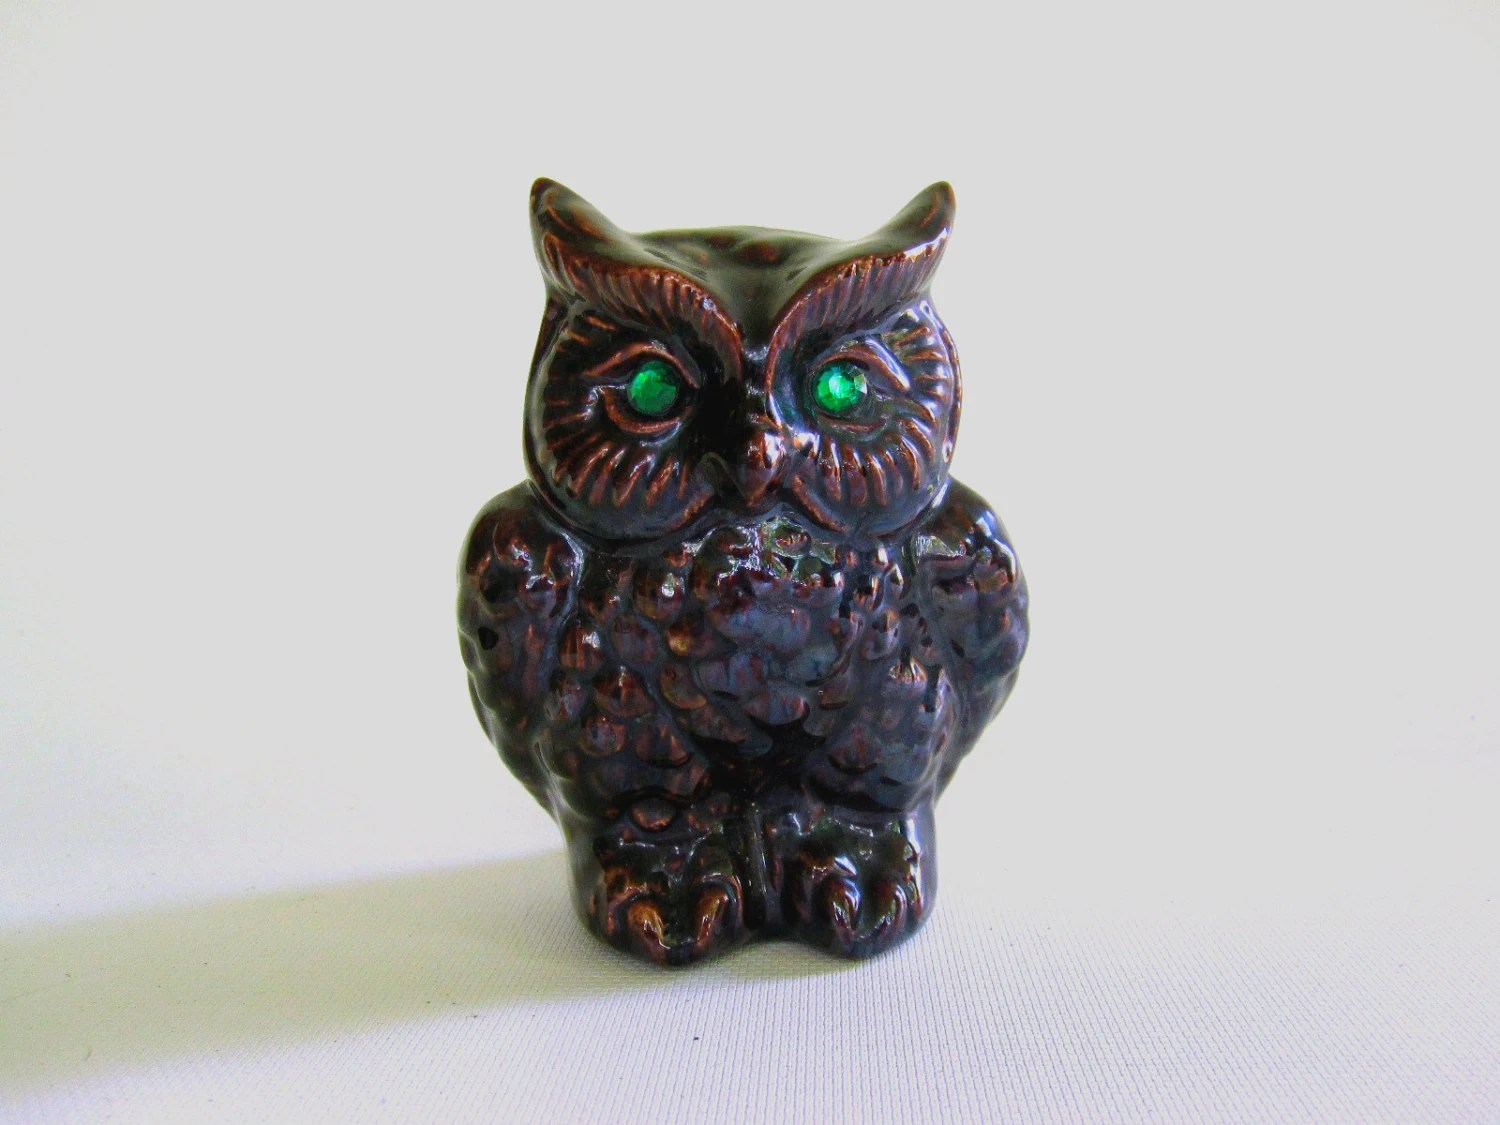 Halloween Owl Black with Green Eyes - Ceramic Owl Statue - LoveButlerVintage